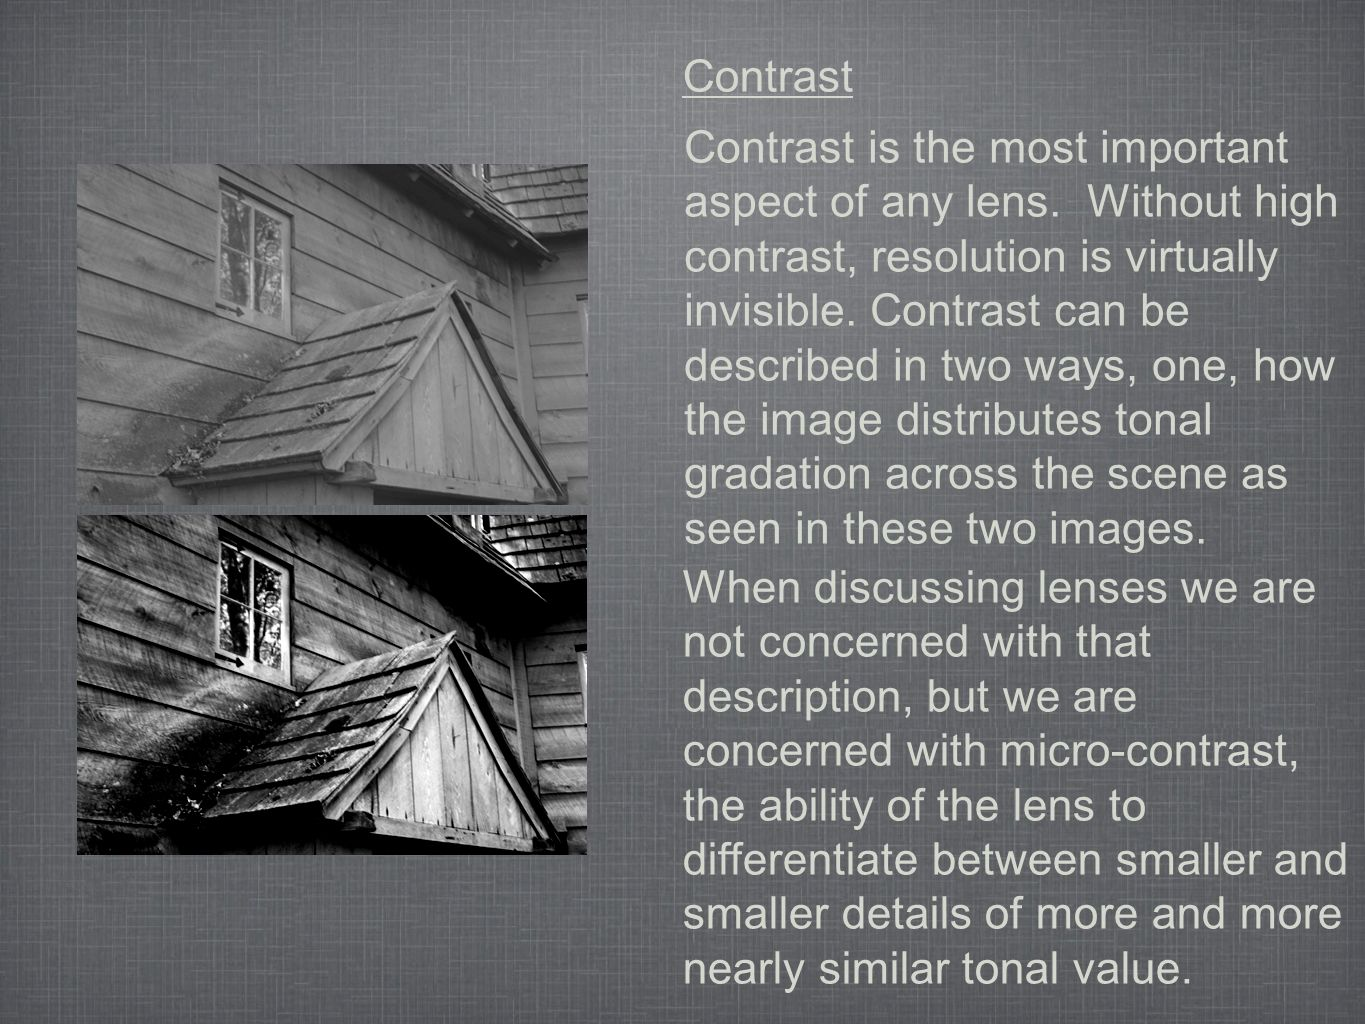 Contrast Contrast is the most important aspect of any lens.